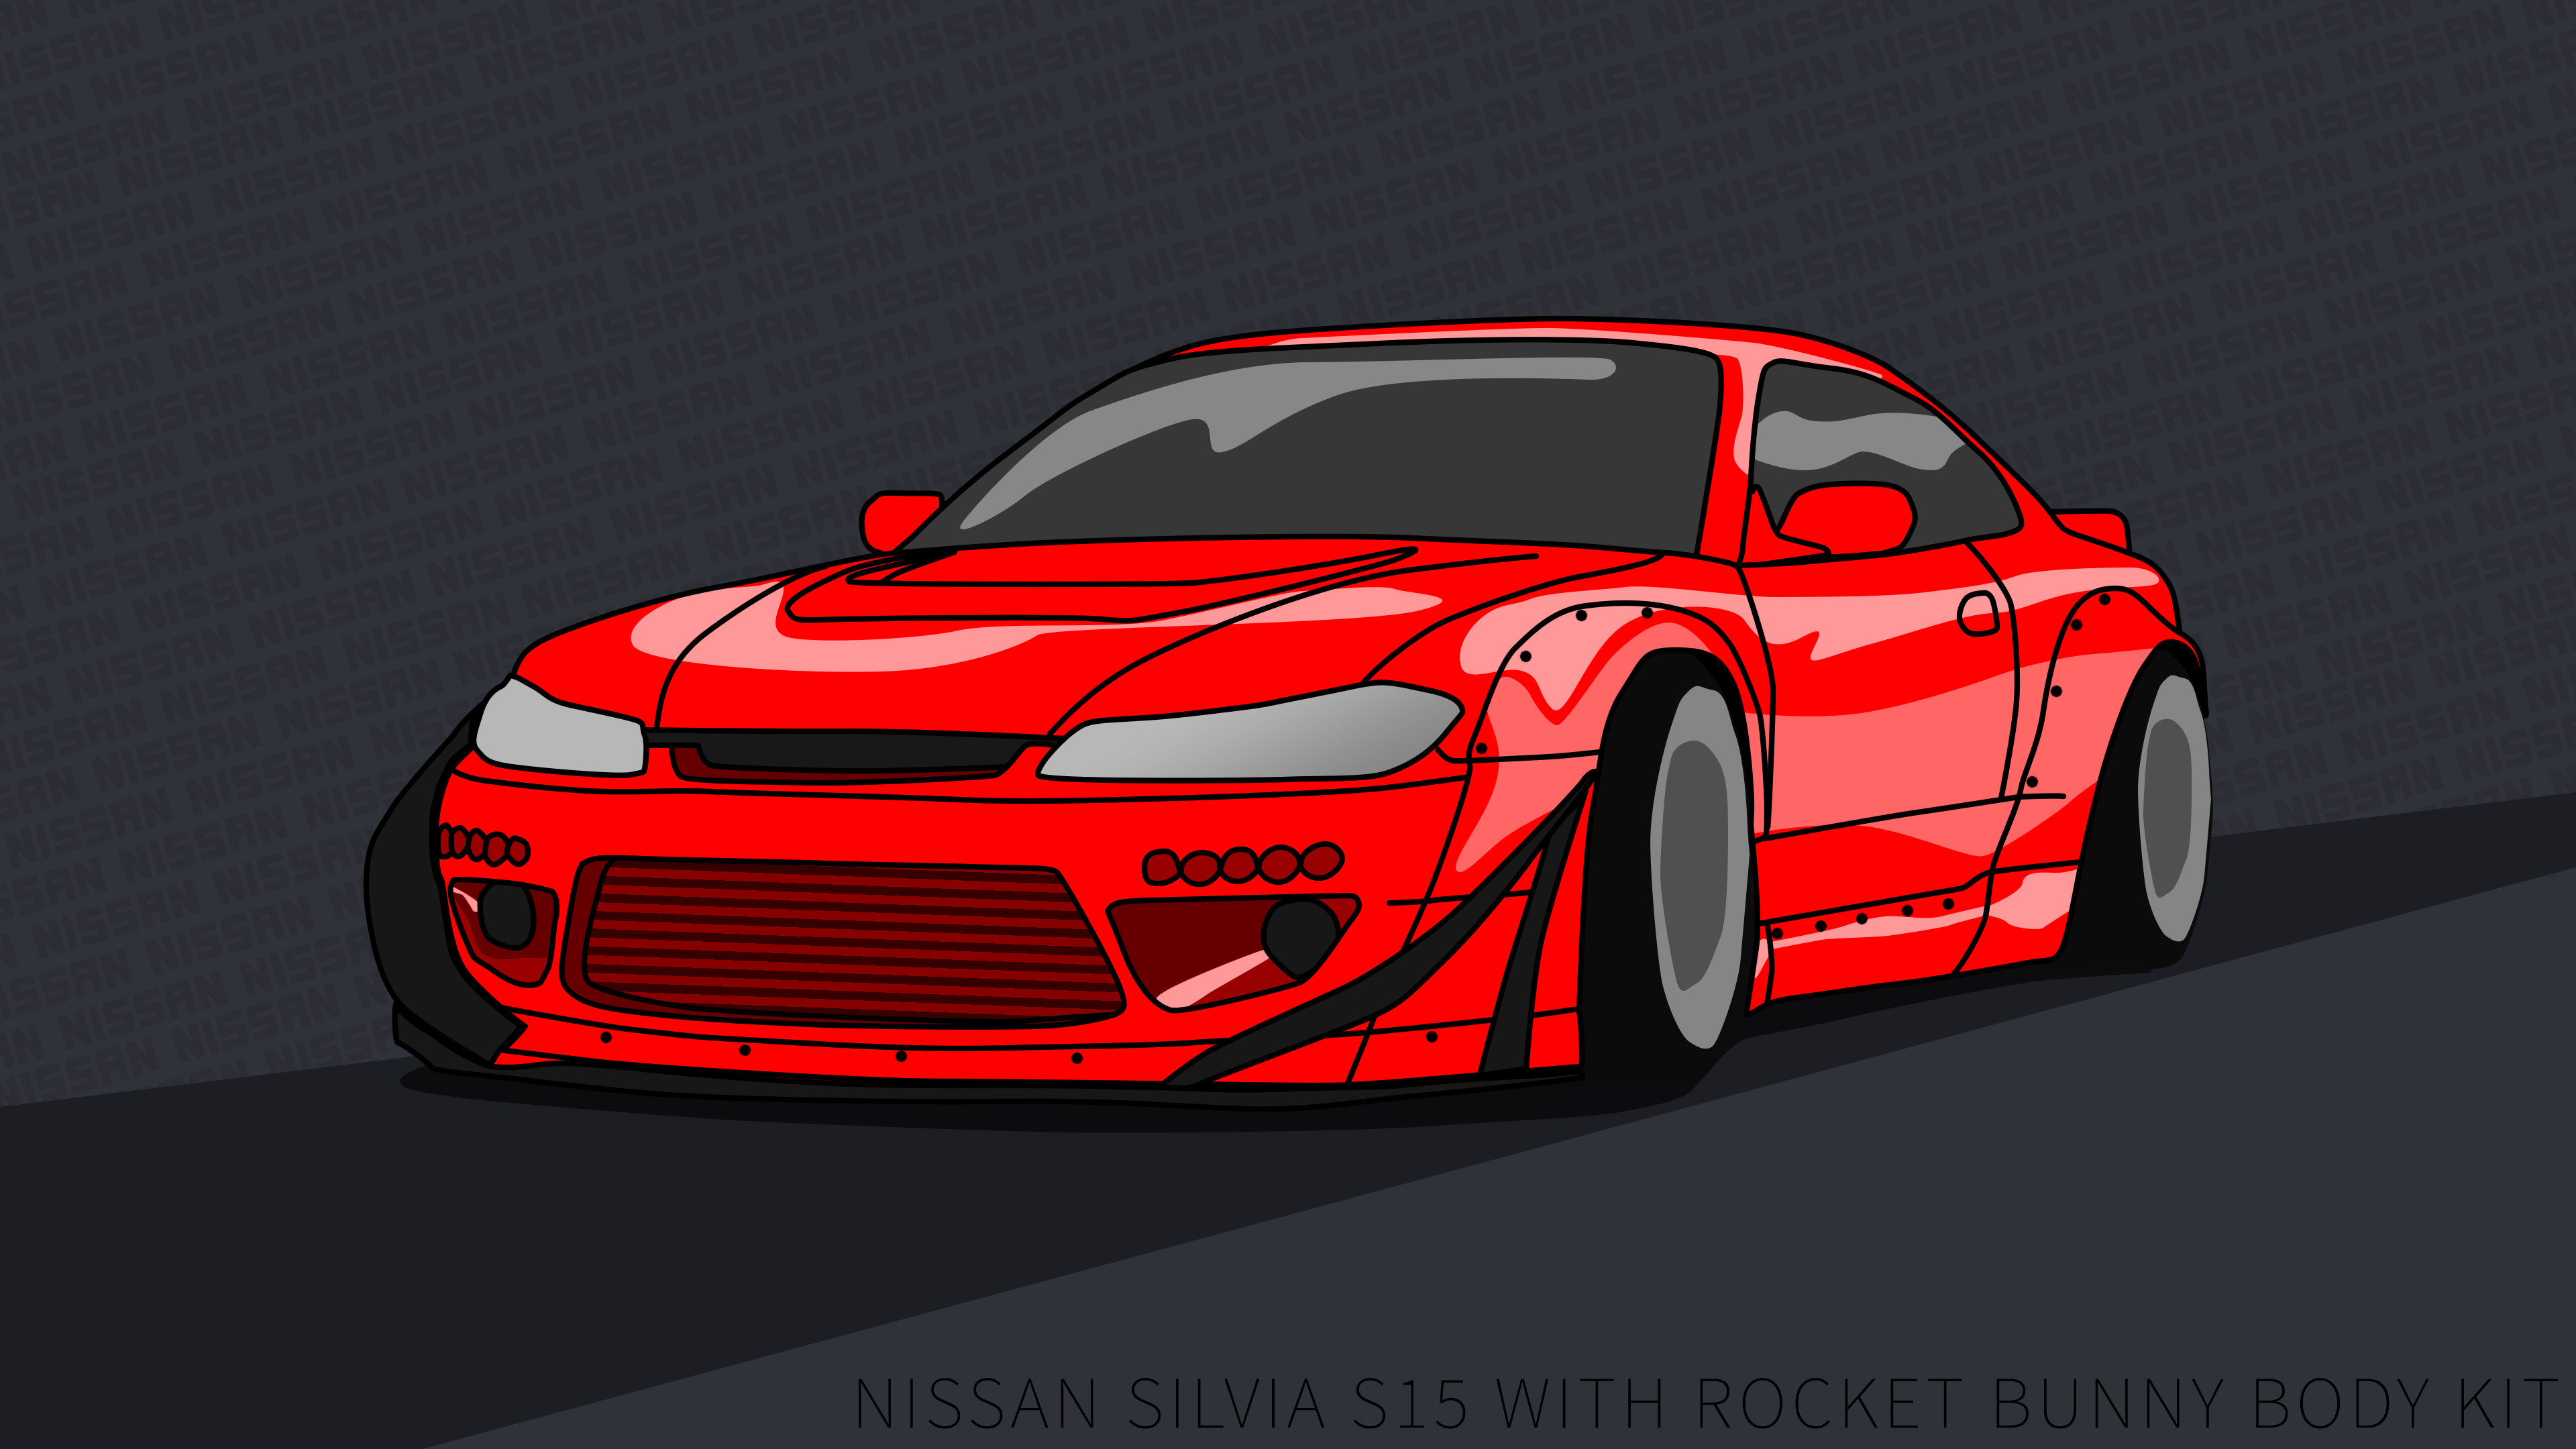 Res: 3840x2160, Nissan Silvia S15 wallpaper 4k rocket bunny Red by ItsBarney01